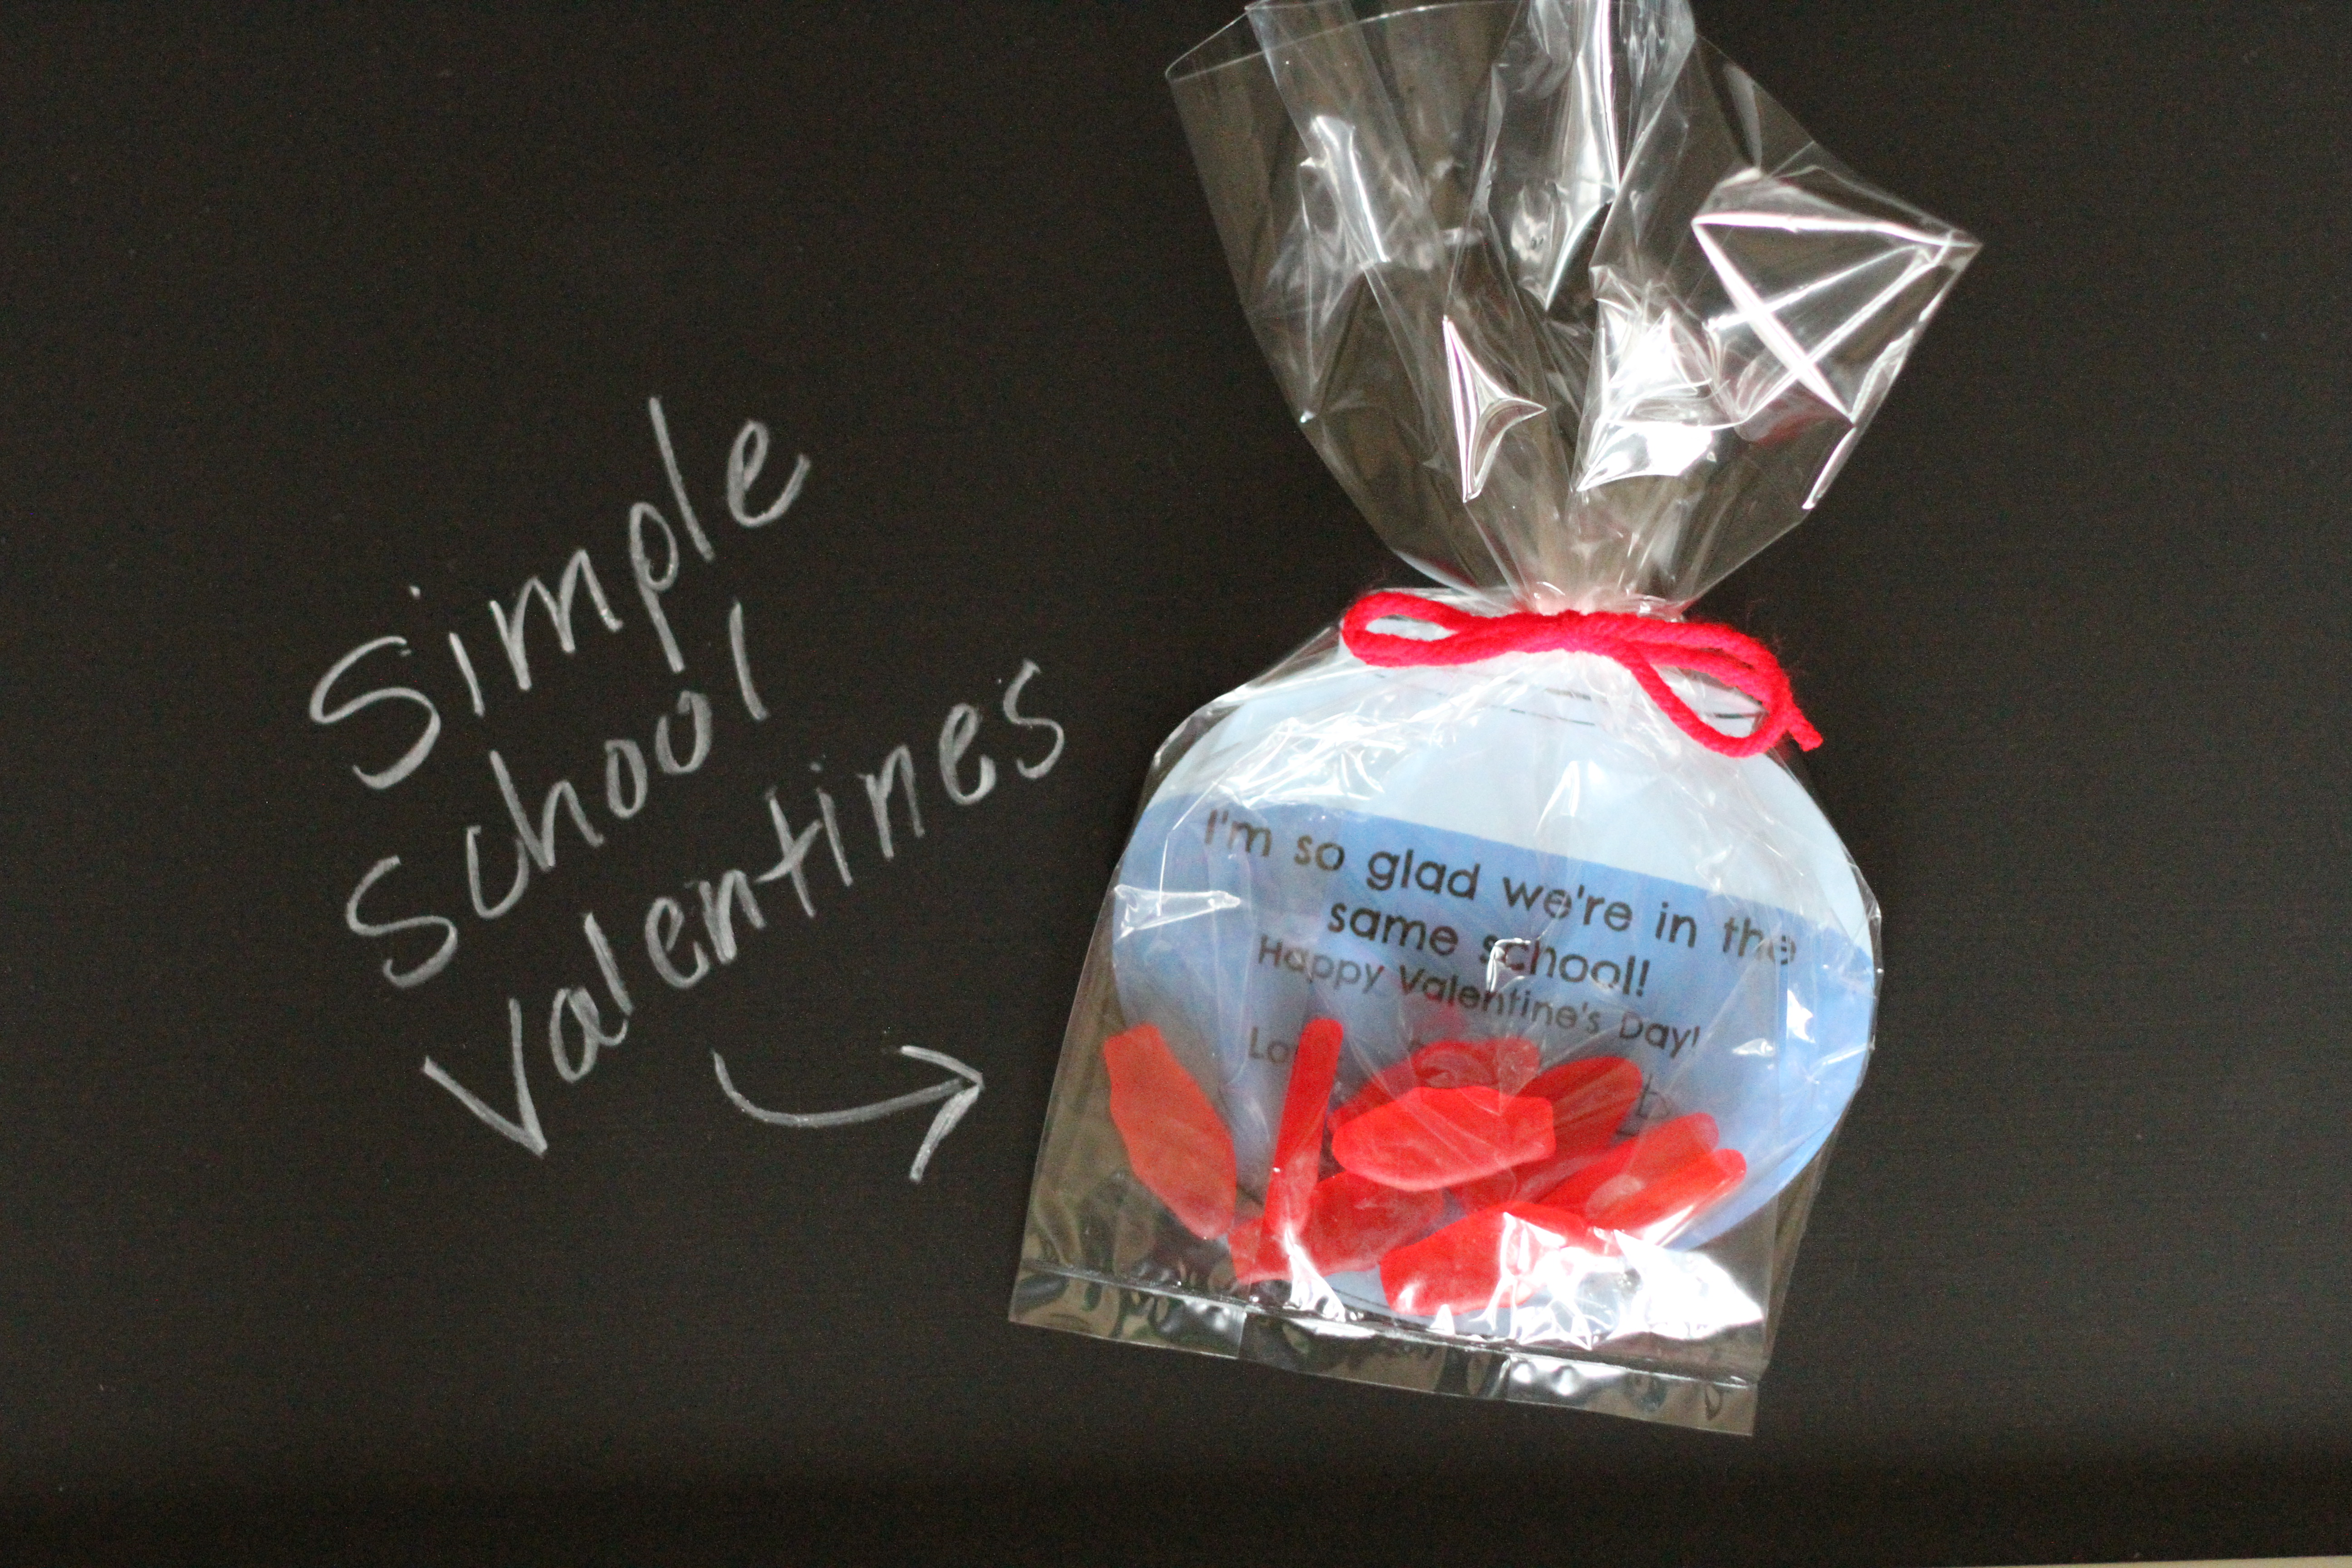 I M So Glad We Re In The Same School Valentines